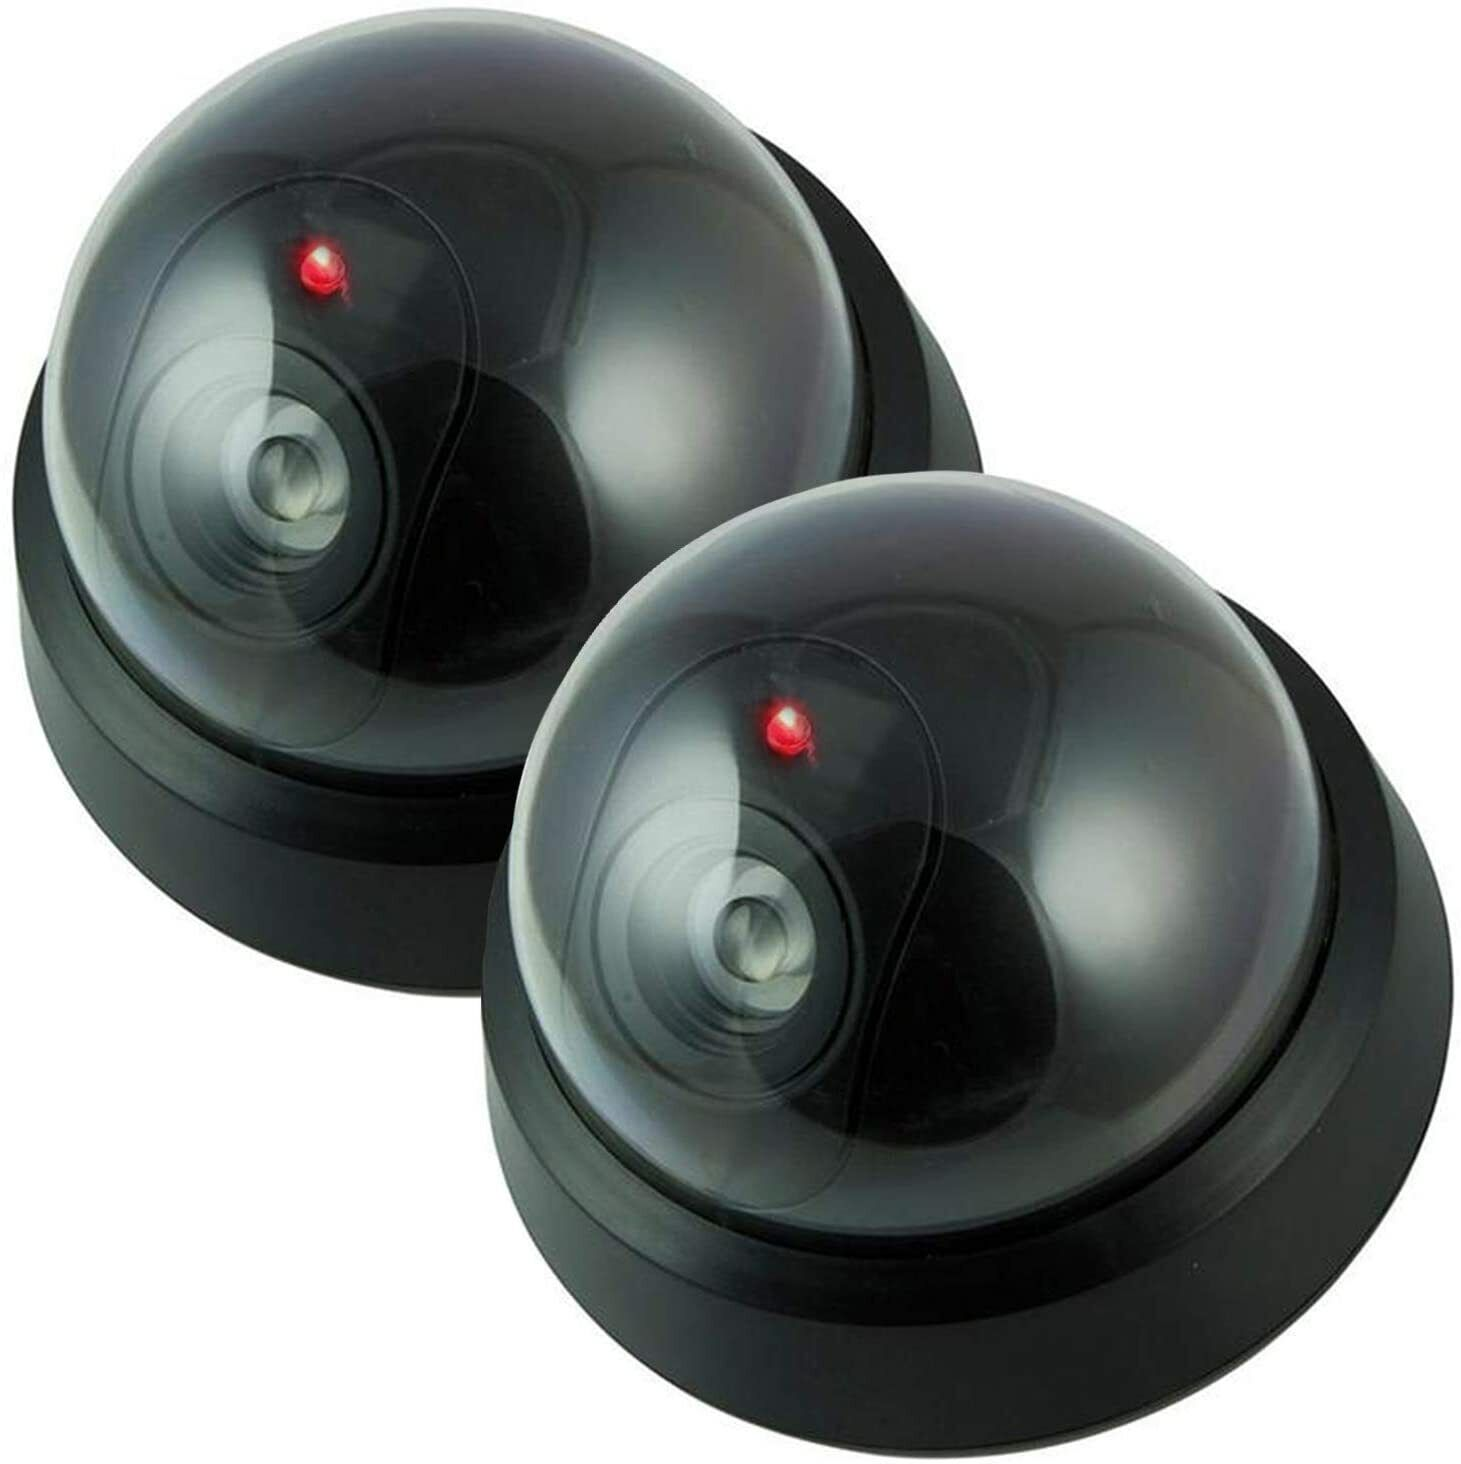 Wireless Decoy Security Dummy Surveillance Camera with Flashing LED- 2 Pack Consumer Electronics